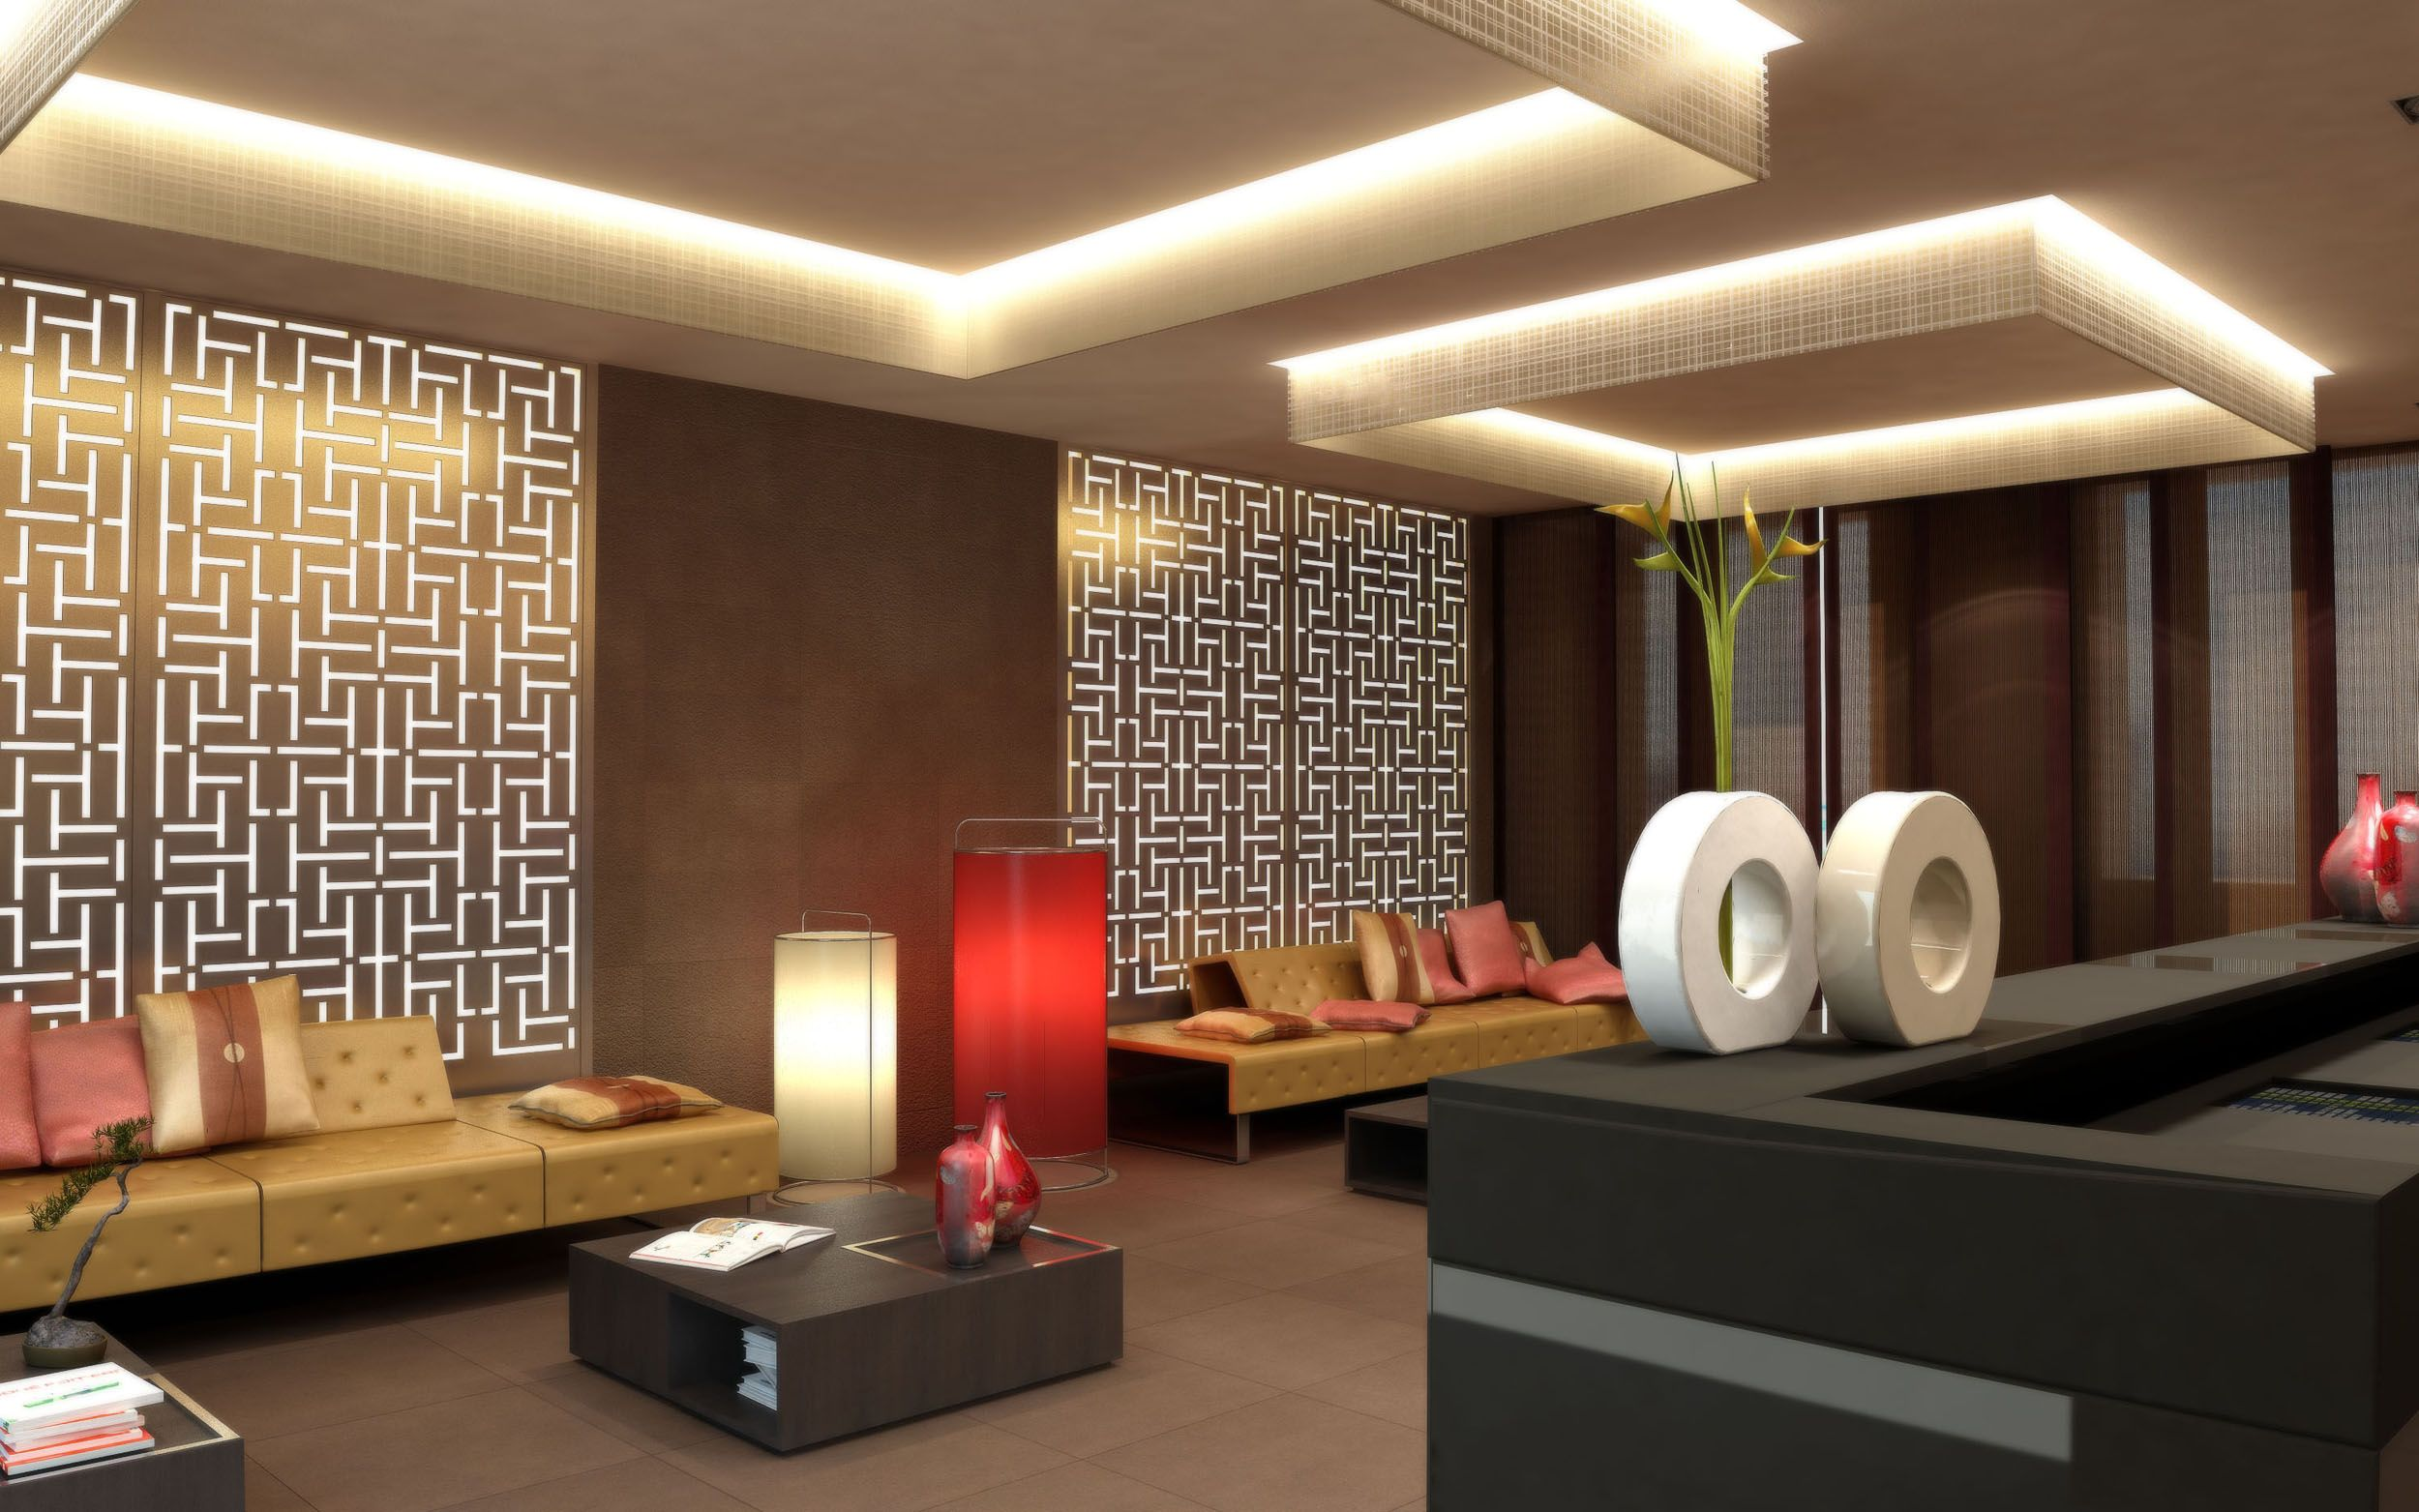 Chinese interior design images chinese interior design for Asian interior decoration